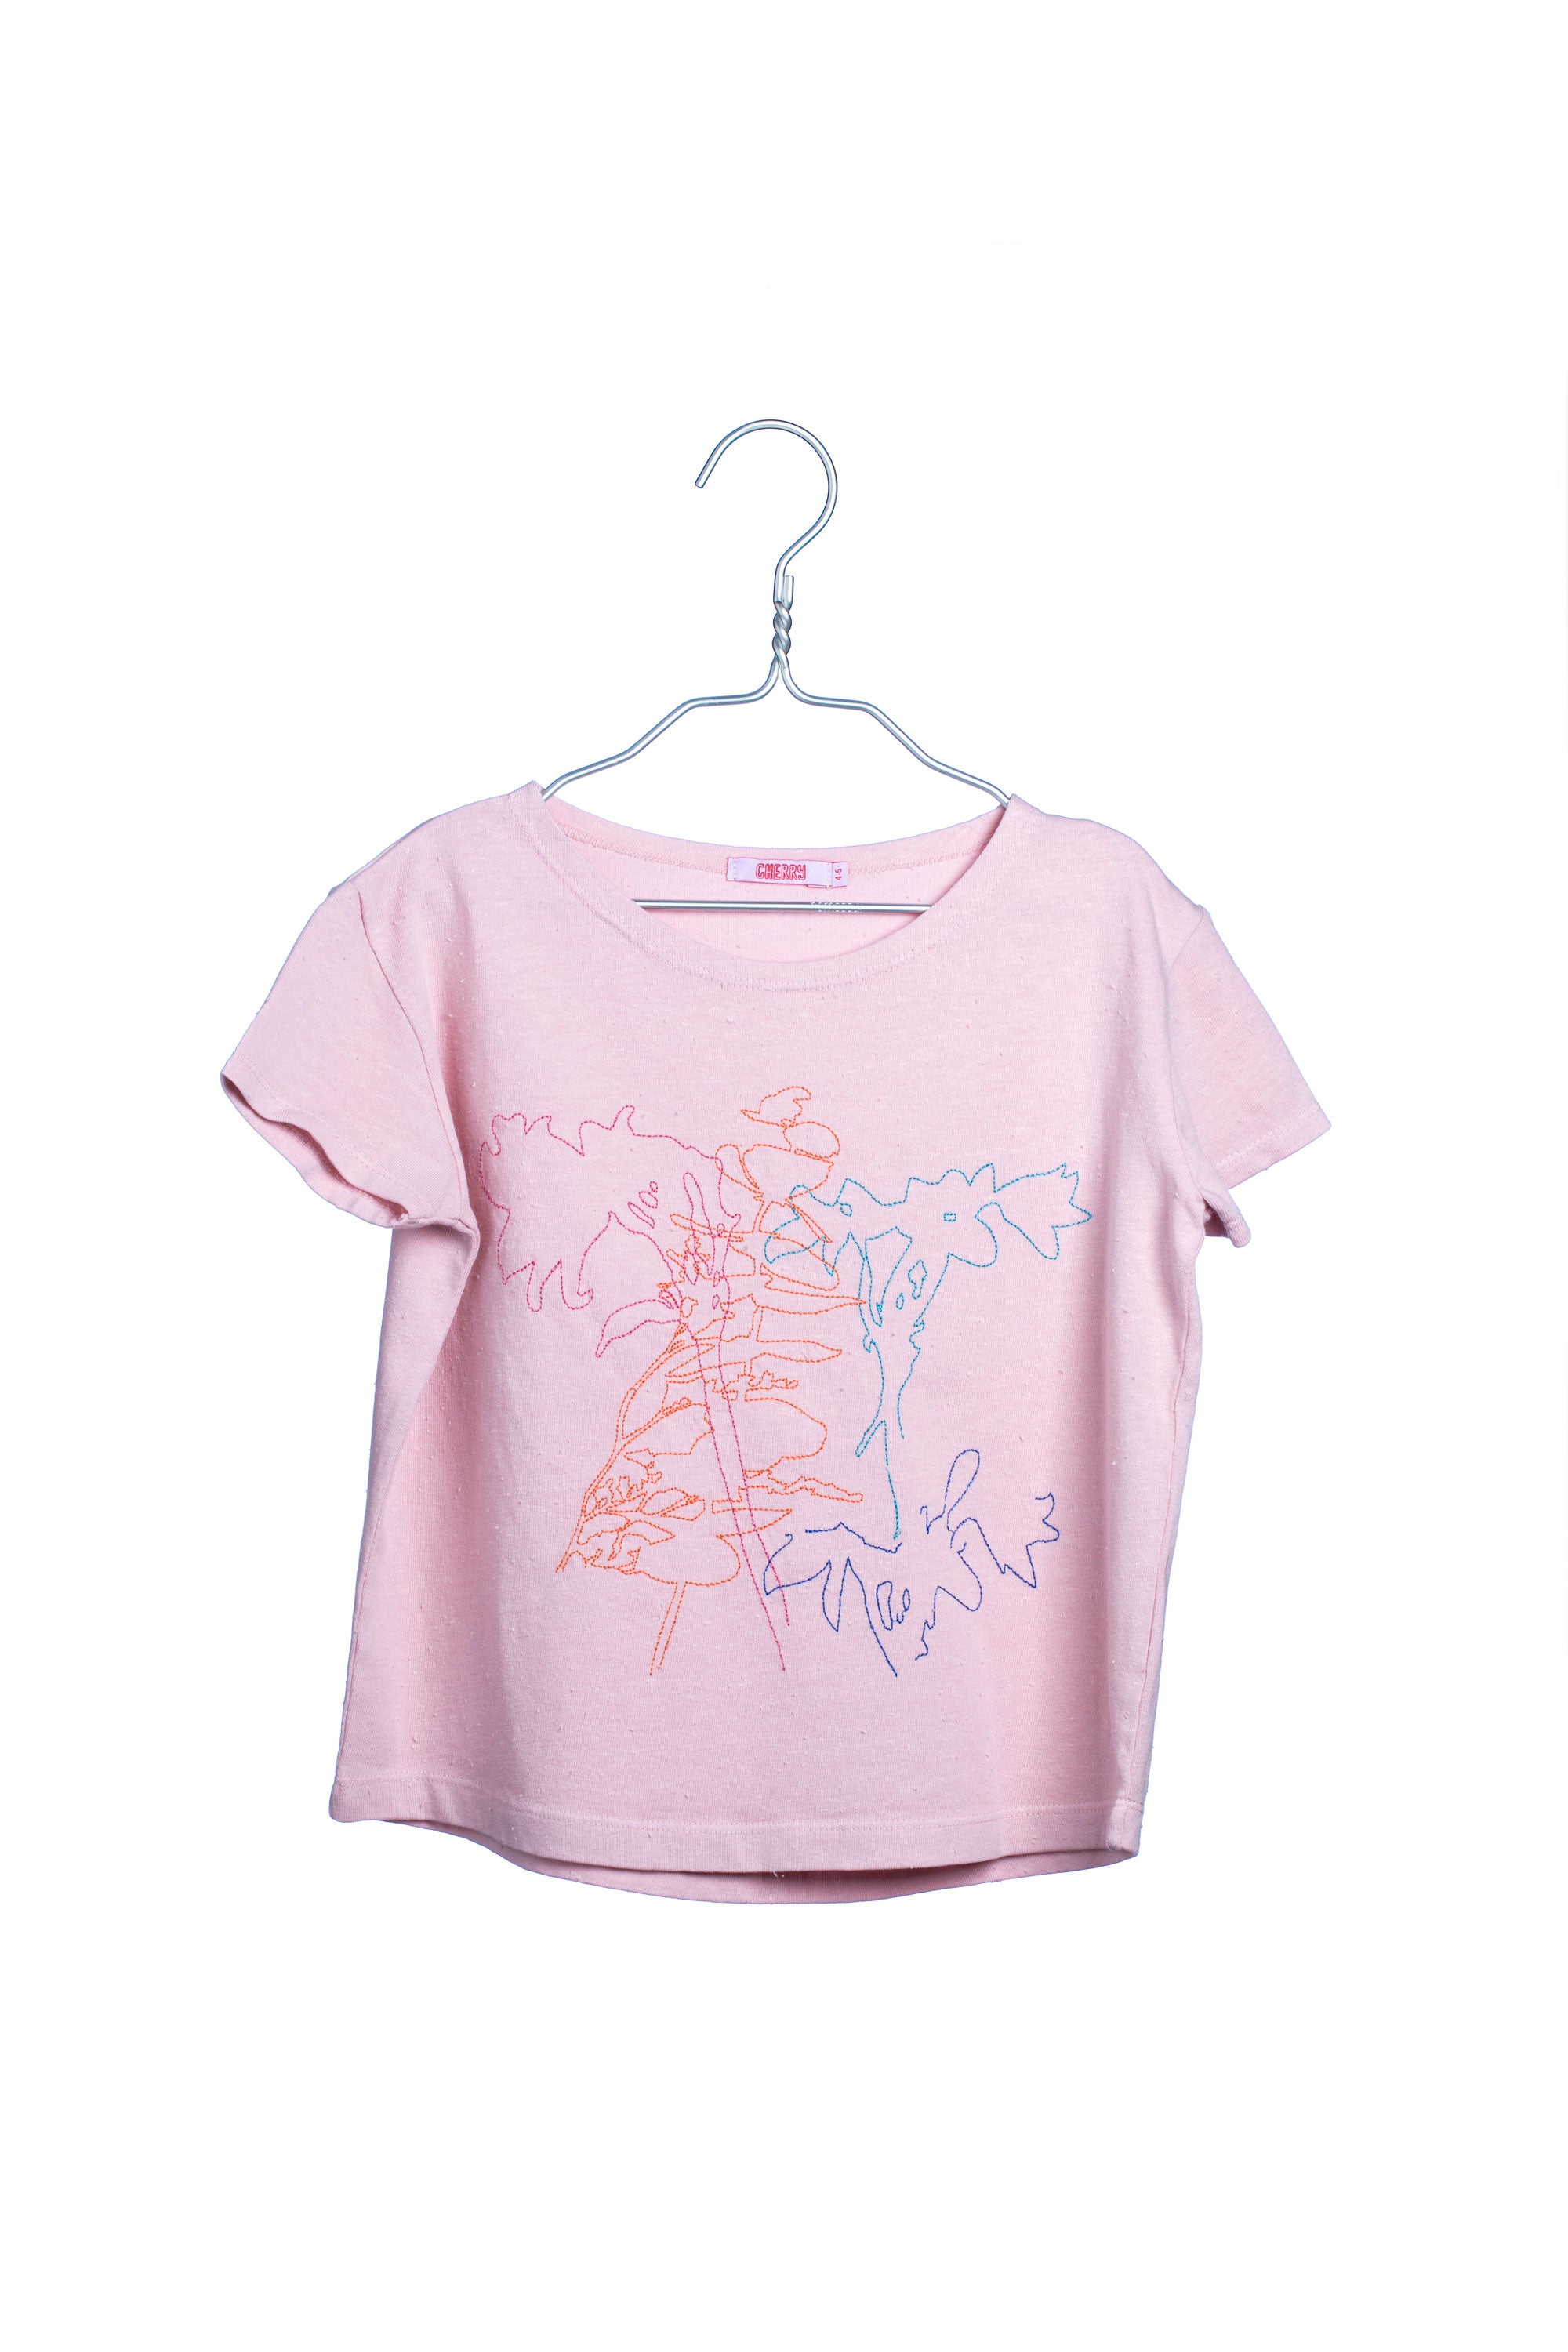 1715 Embroidered Flowers Tee - Pink